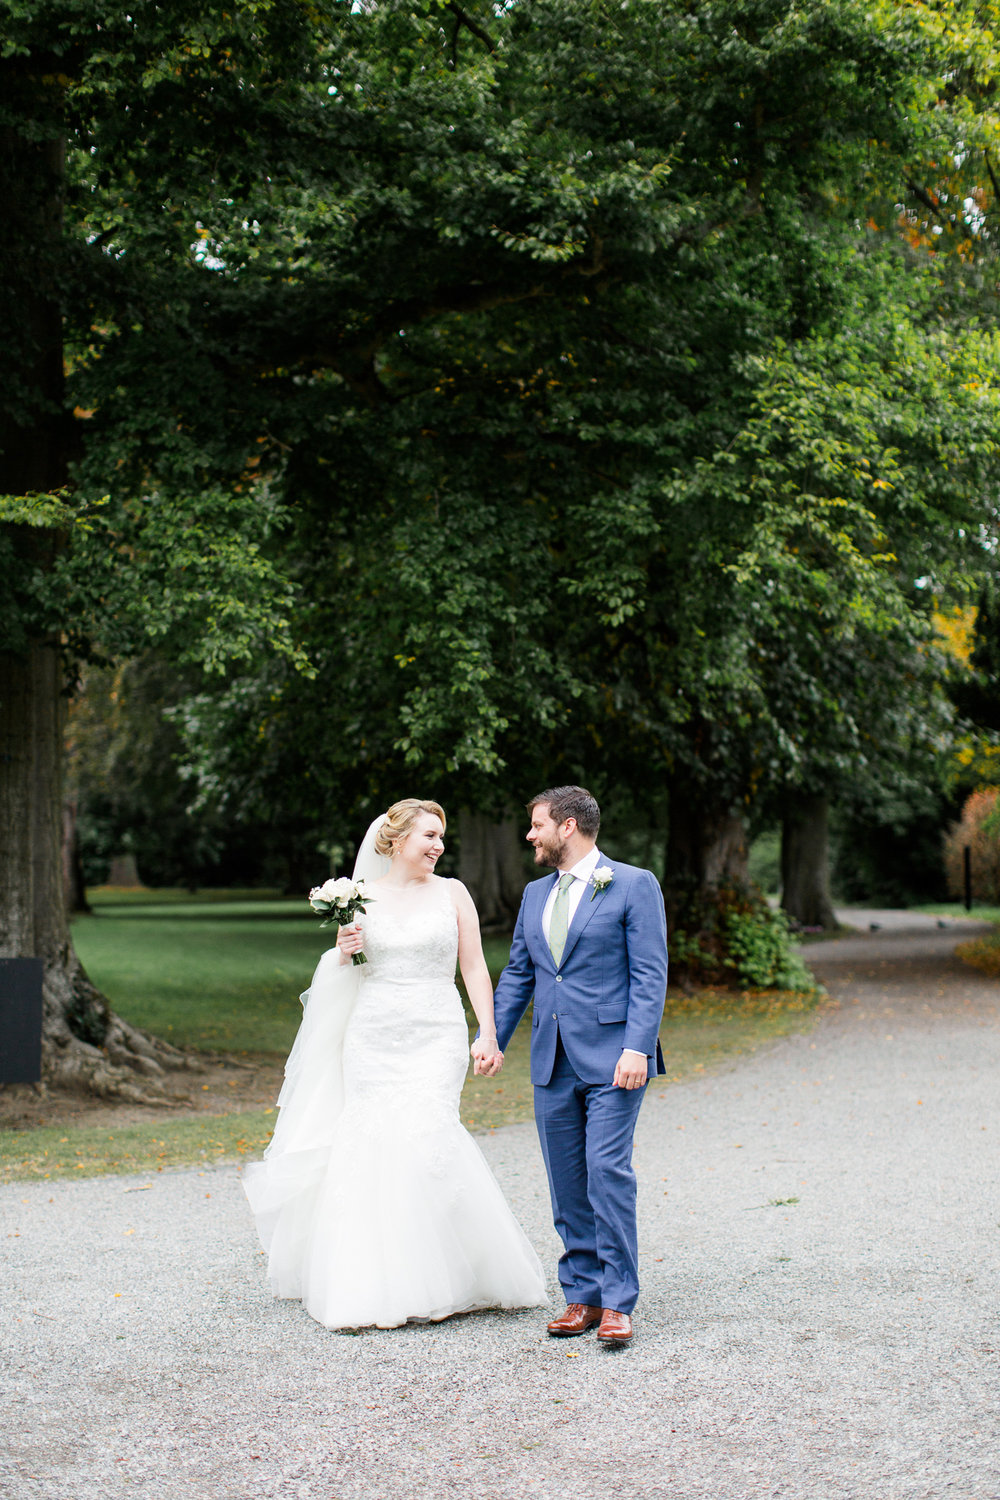 Farmleigh House wedding photos